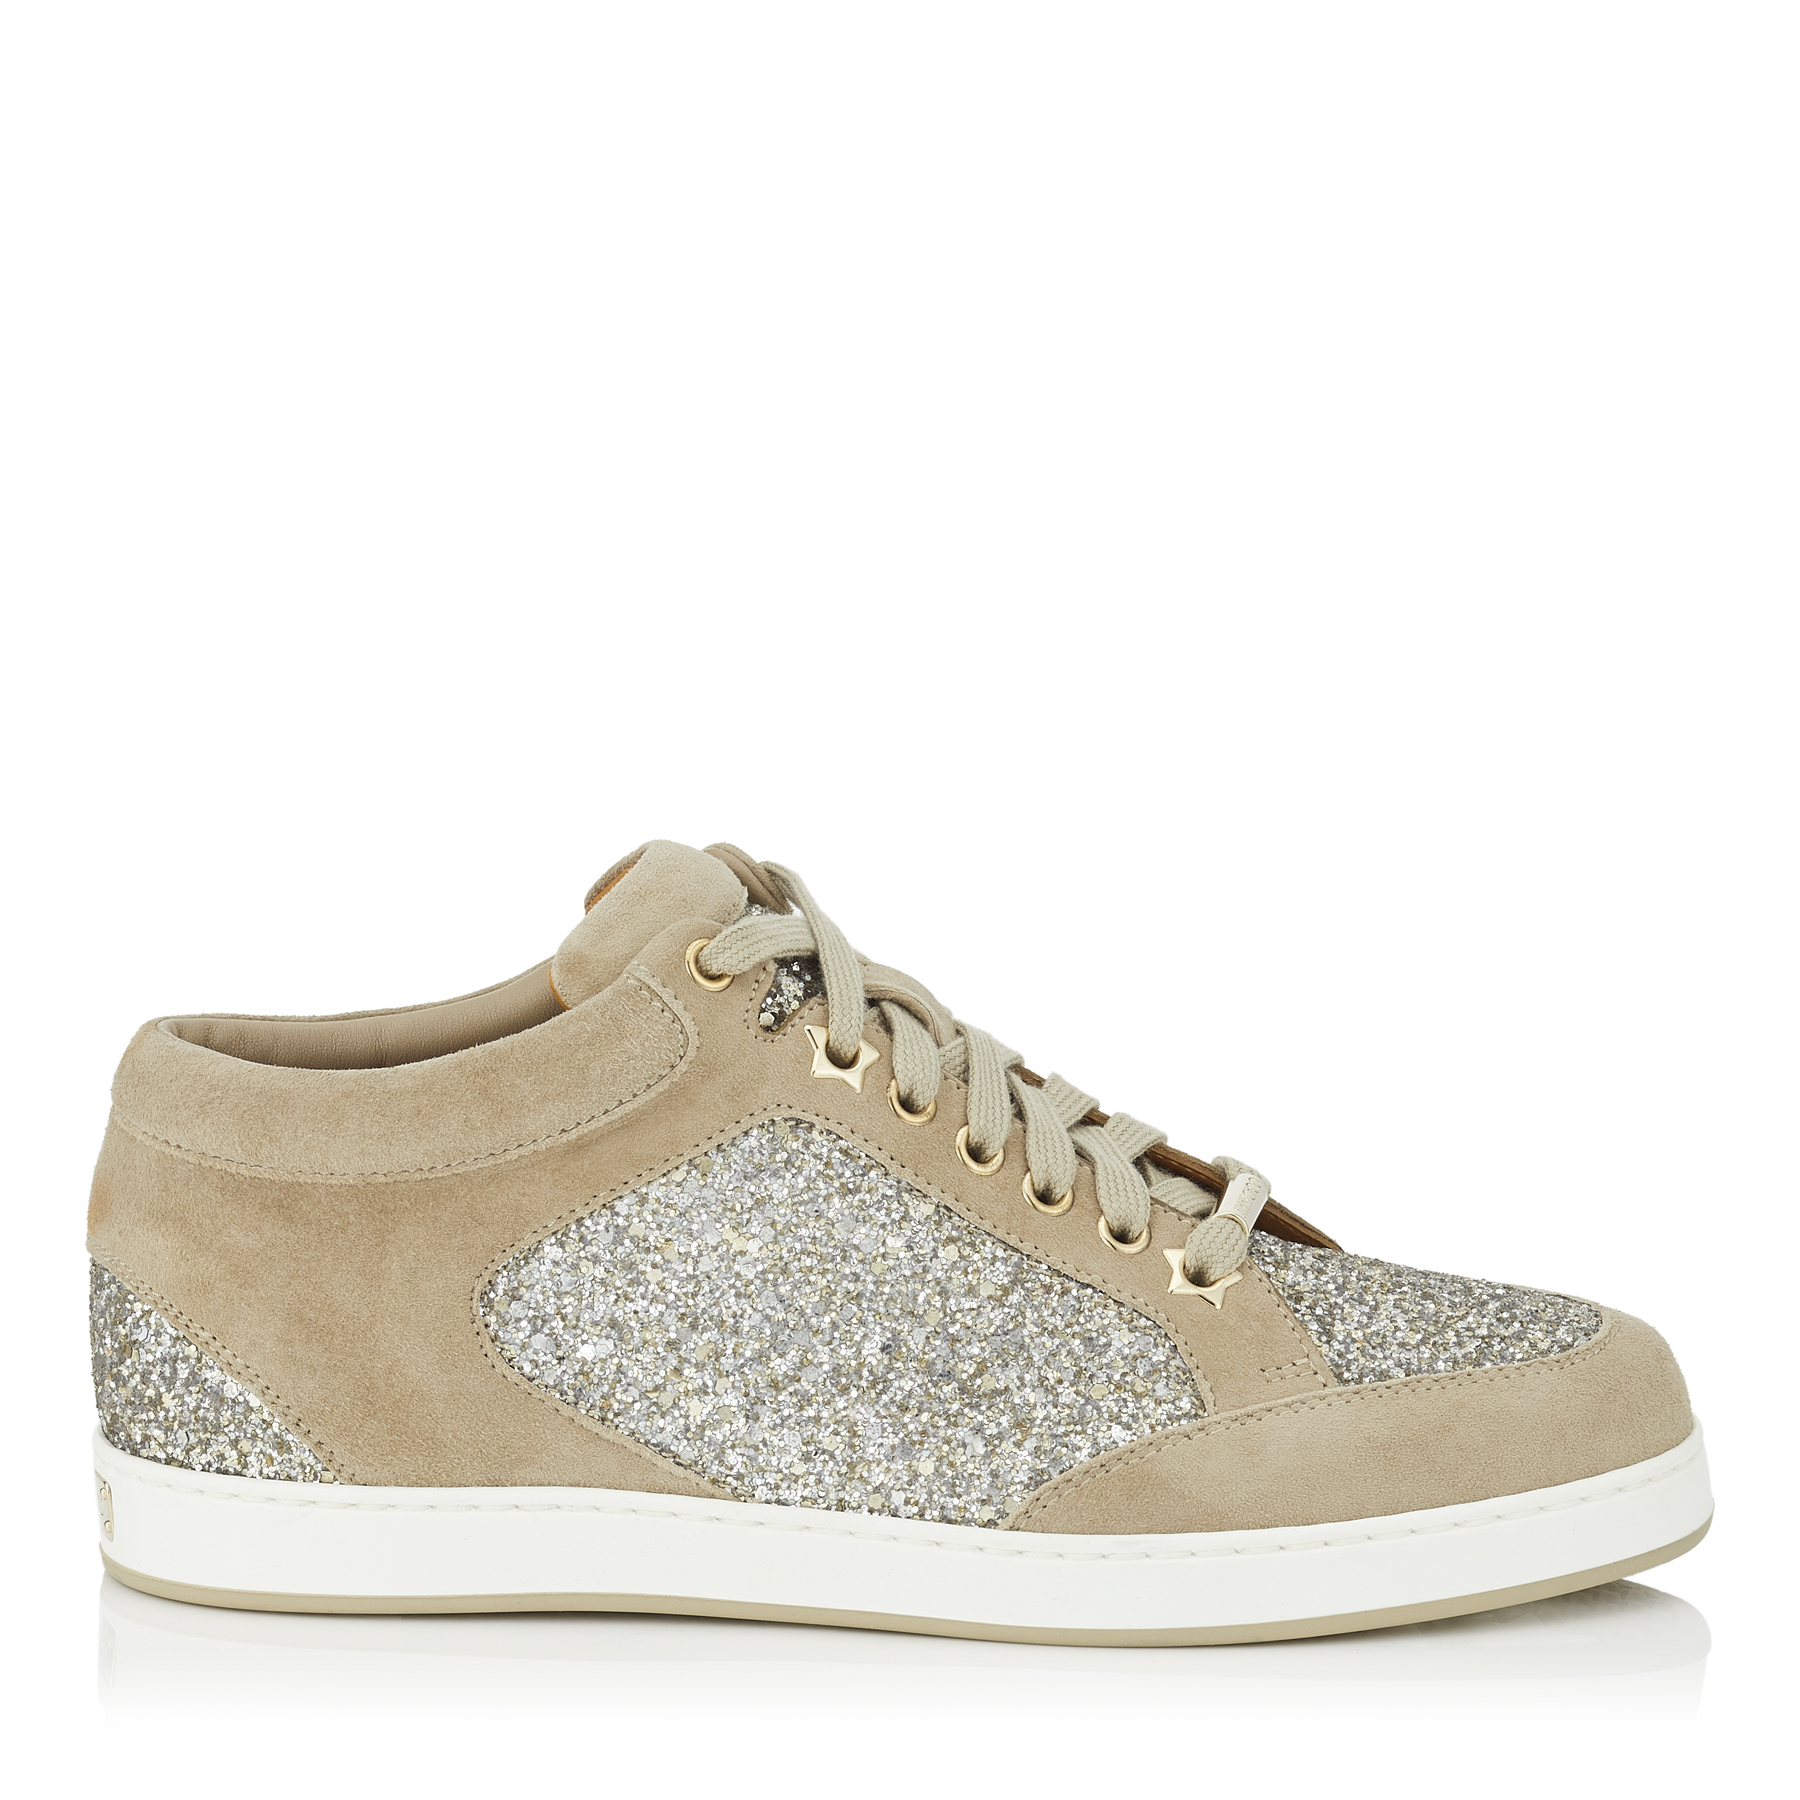 MIAMI Chai Shadow Coarse Glitter Fabric and Suede Sneakers by Jimmy Choo